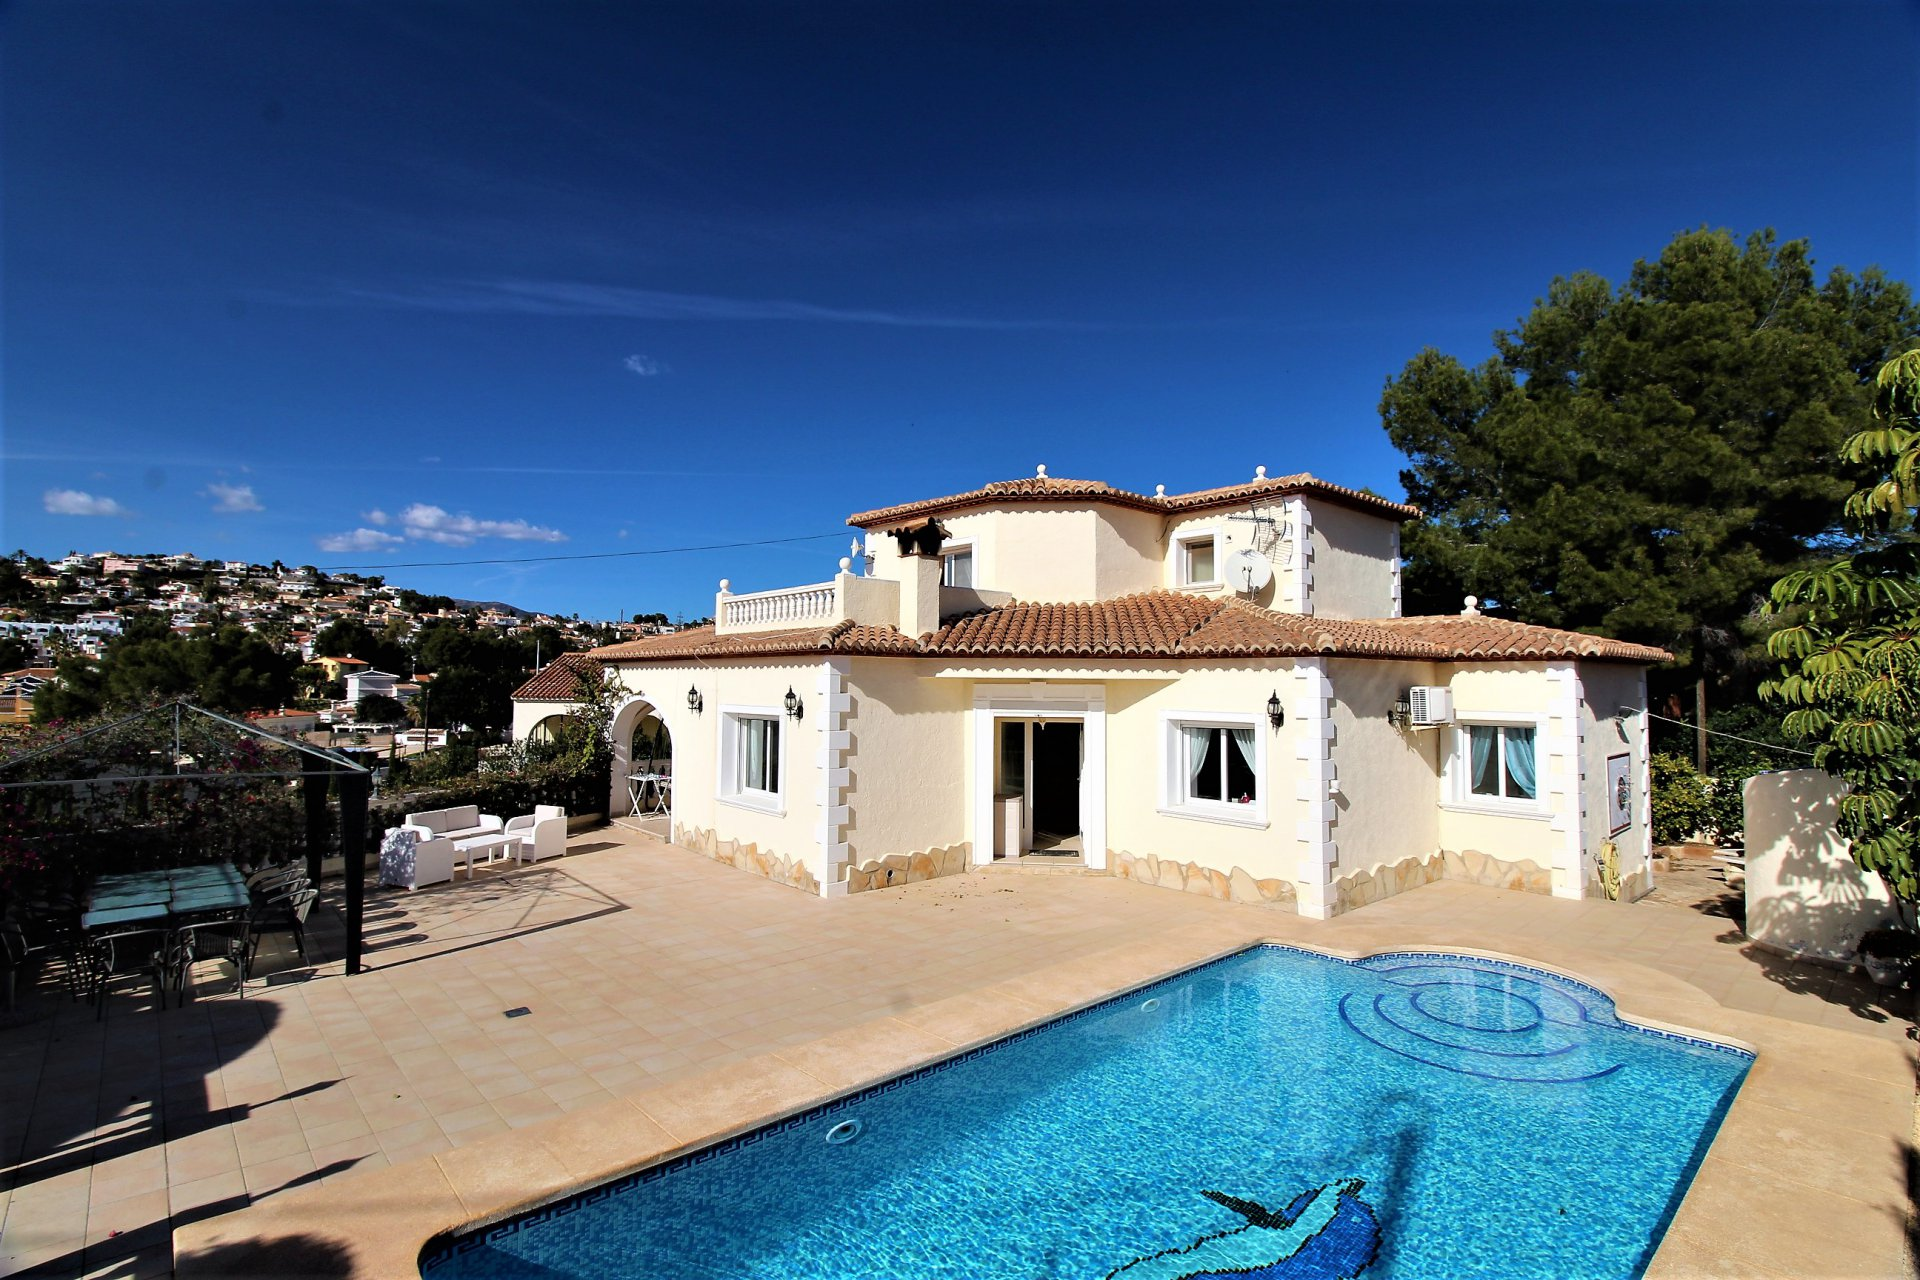 High quality villa with 5 bedrooms